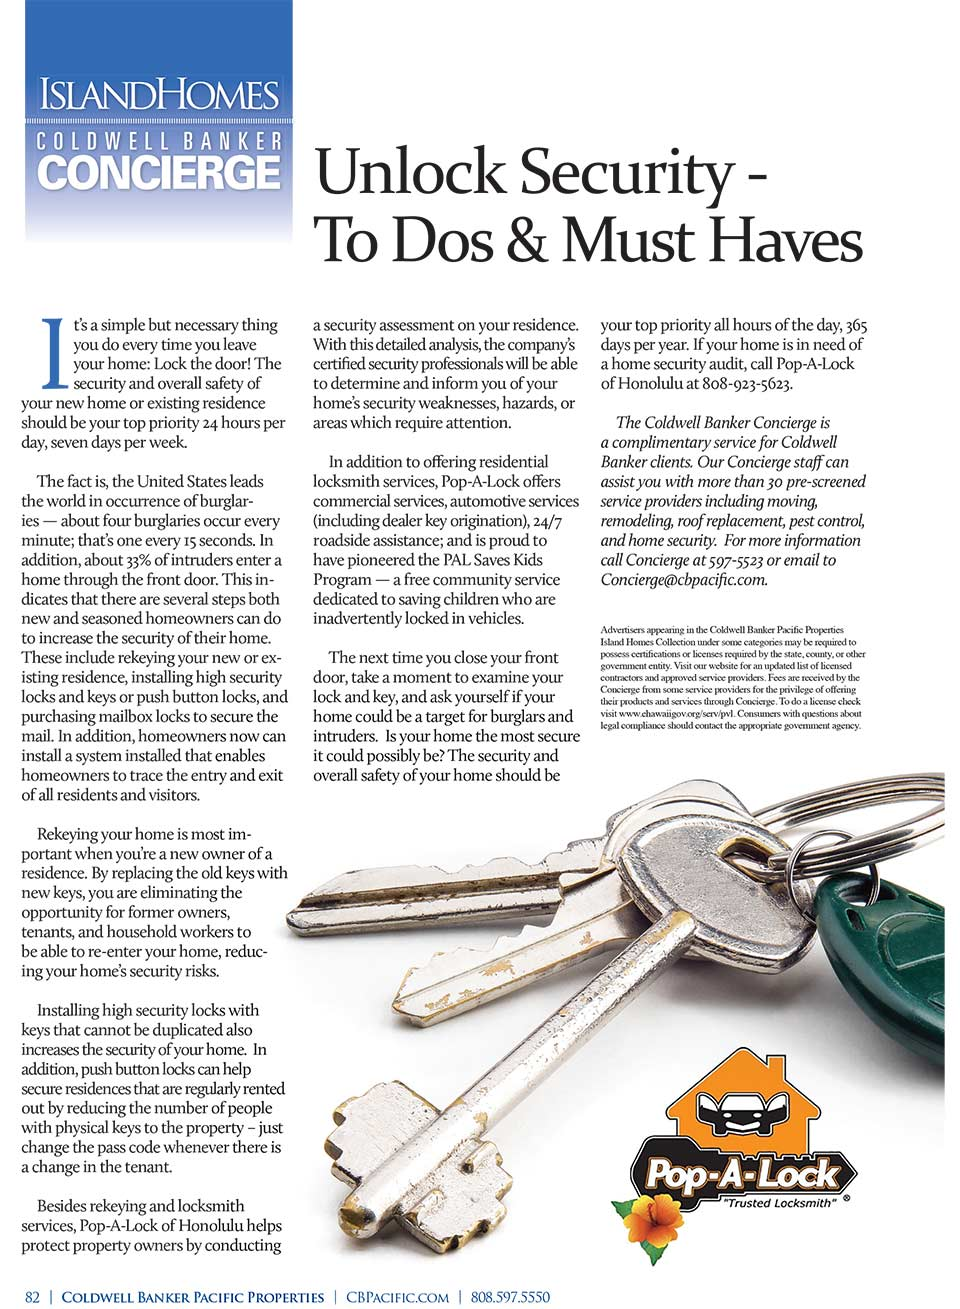 article image by coldwell banker